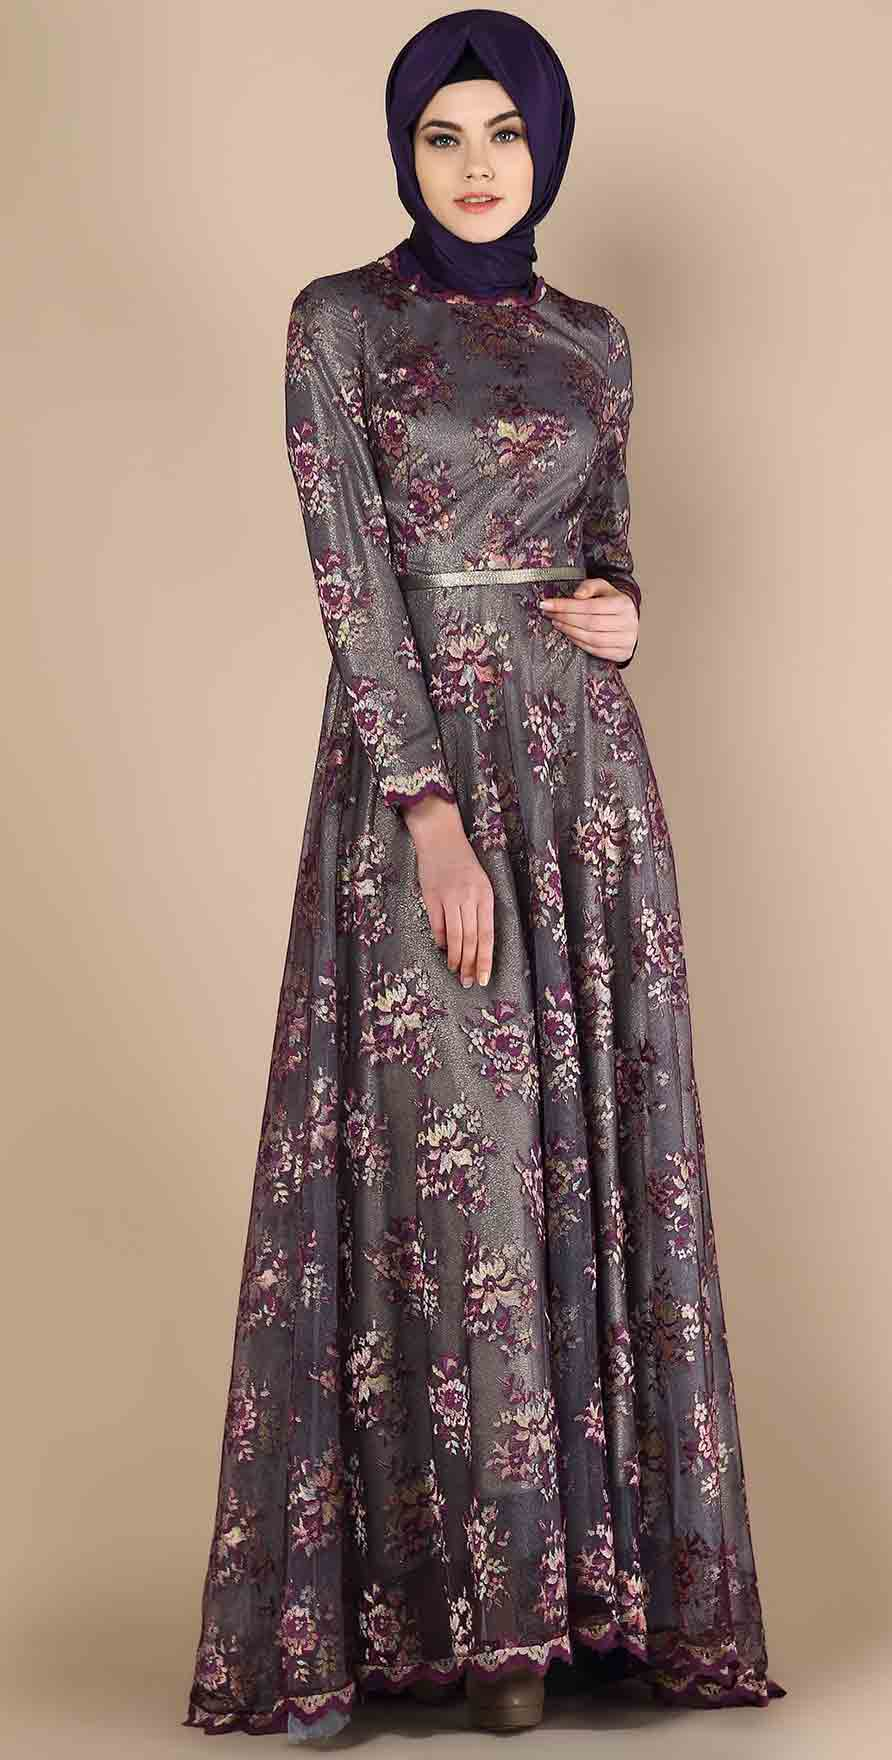 Formal Party Wear Abaya With Hijab Styles 2018 Fashioneven